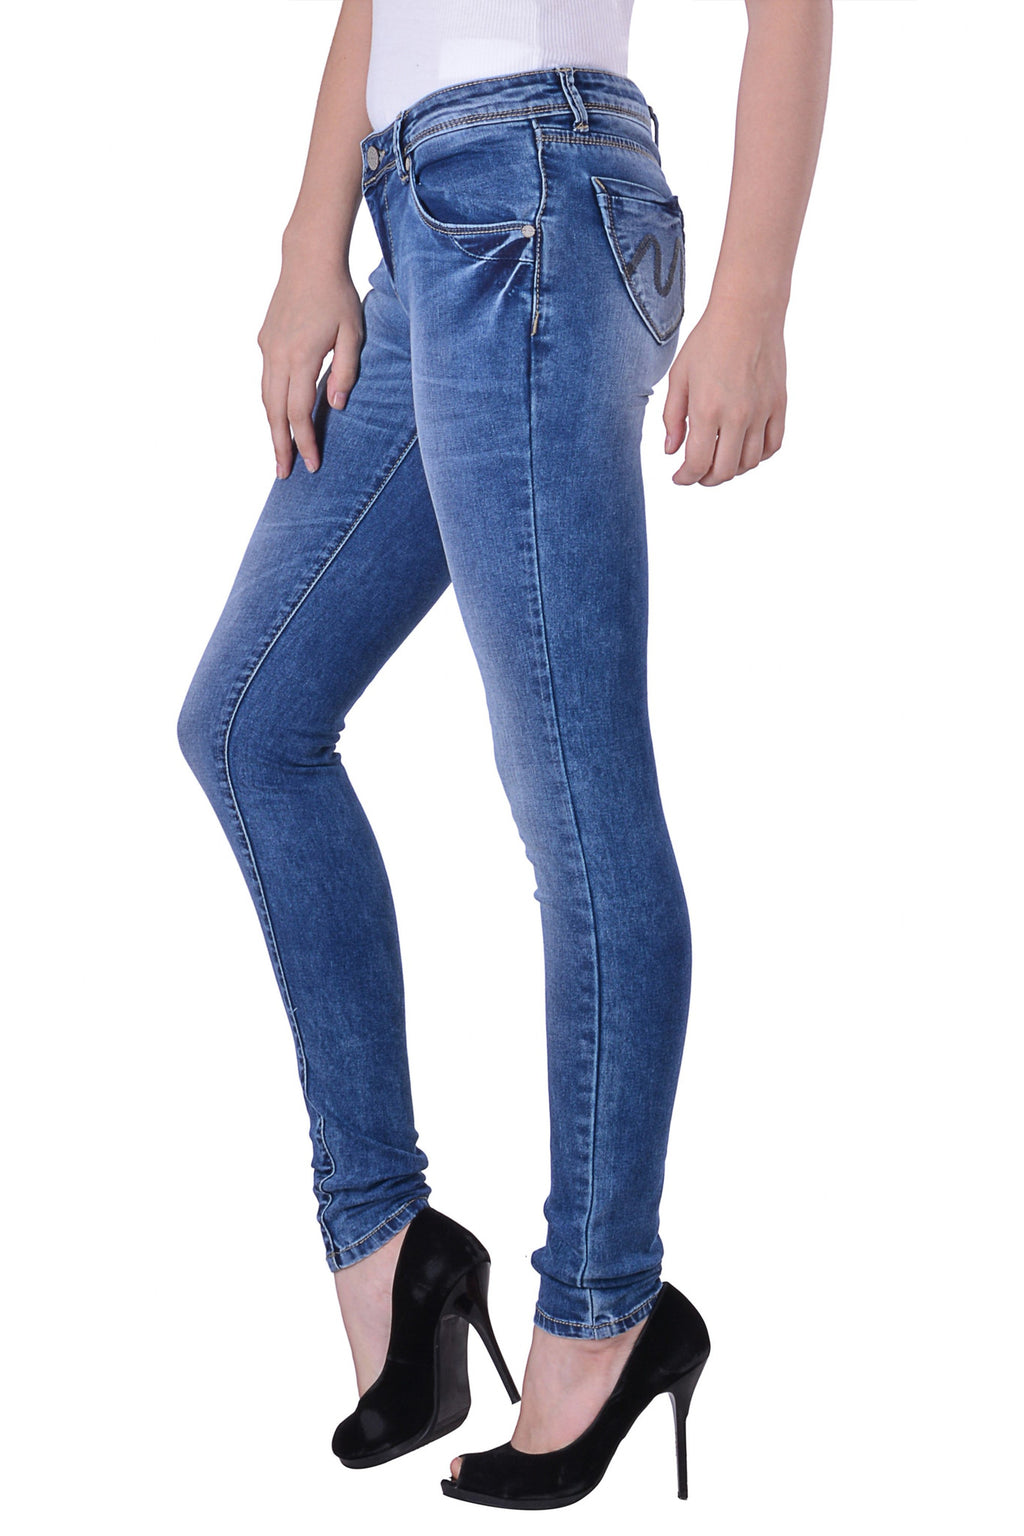 Hoffmen Slim Fit Women's Blue Jeans MSGS1250